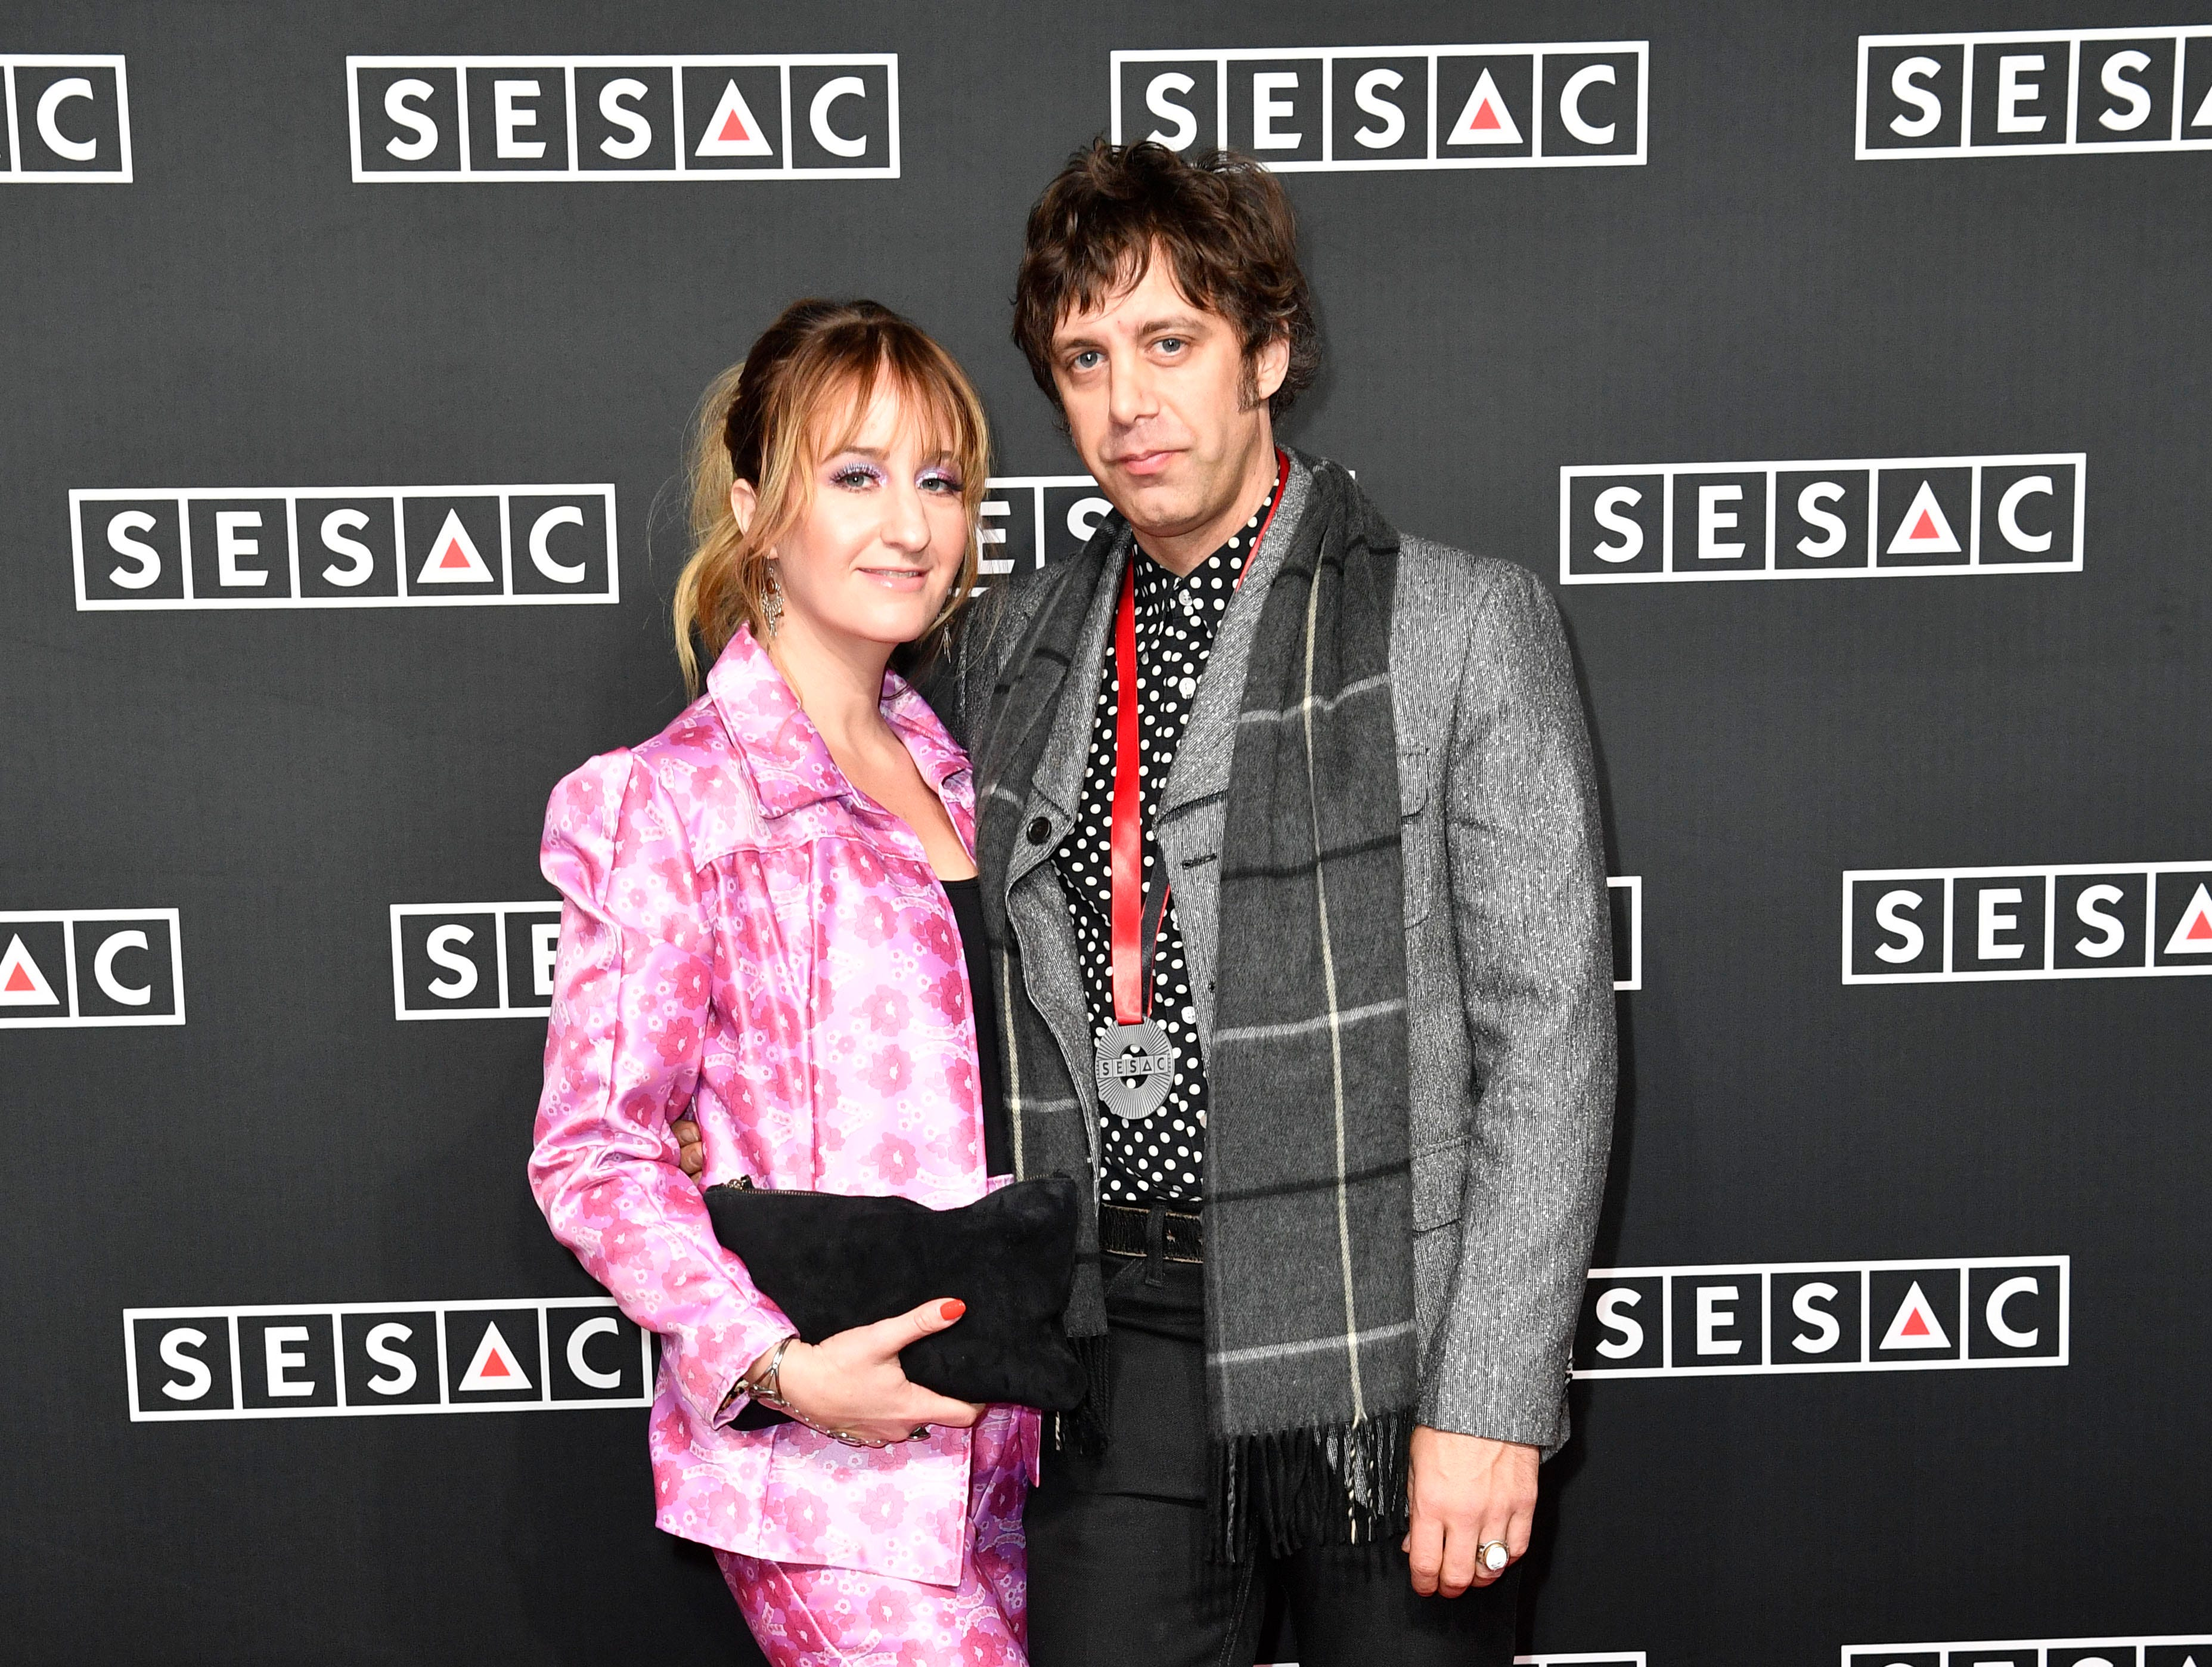 Margo Price and Jeremy Ivey on the red carpet at the SESAC Nashville Music Awards at the Country Music Hall of Fame and Museum Sunday Nov. 11, 2018, in Nashville, Tenn.